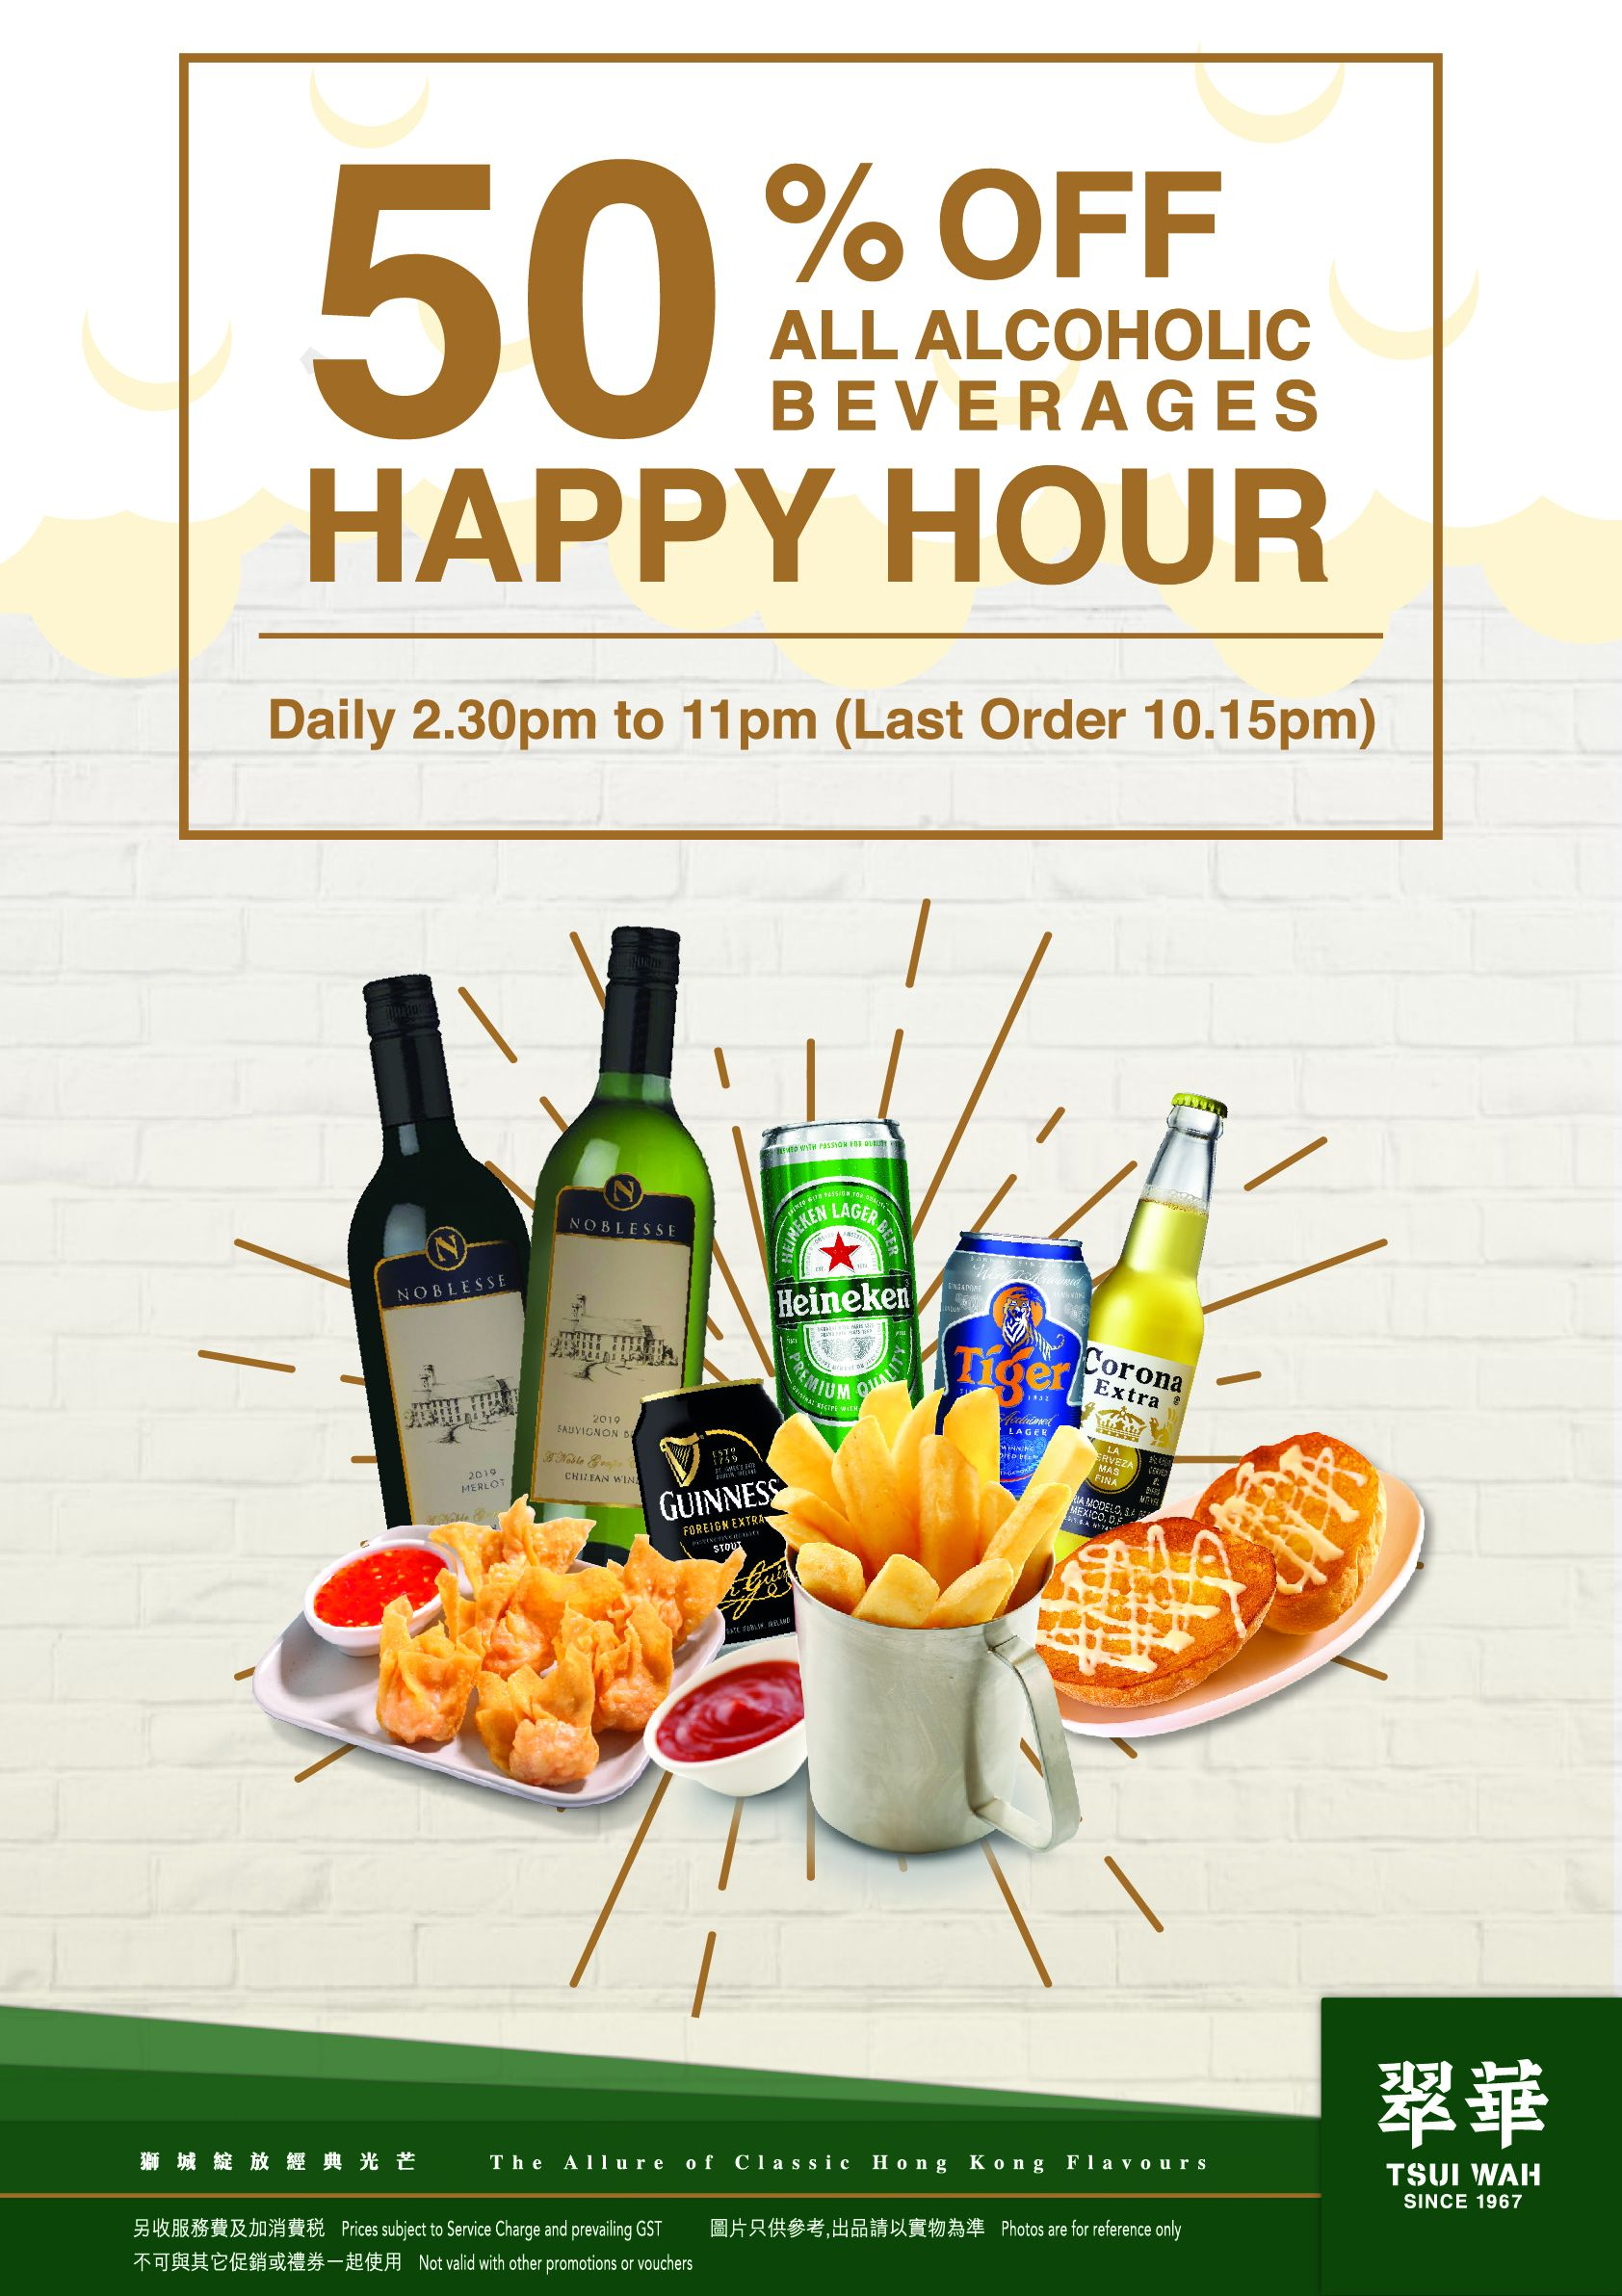 Happy Hour: 50% off ALL alcoholic drinks at Tsui Wah Clarke Quay   Why Not Deals 2 & Promotions